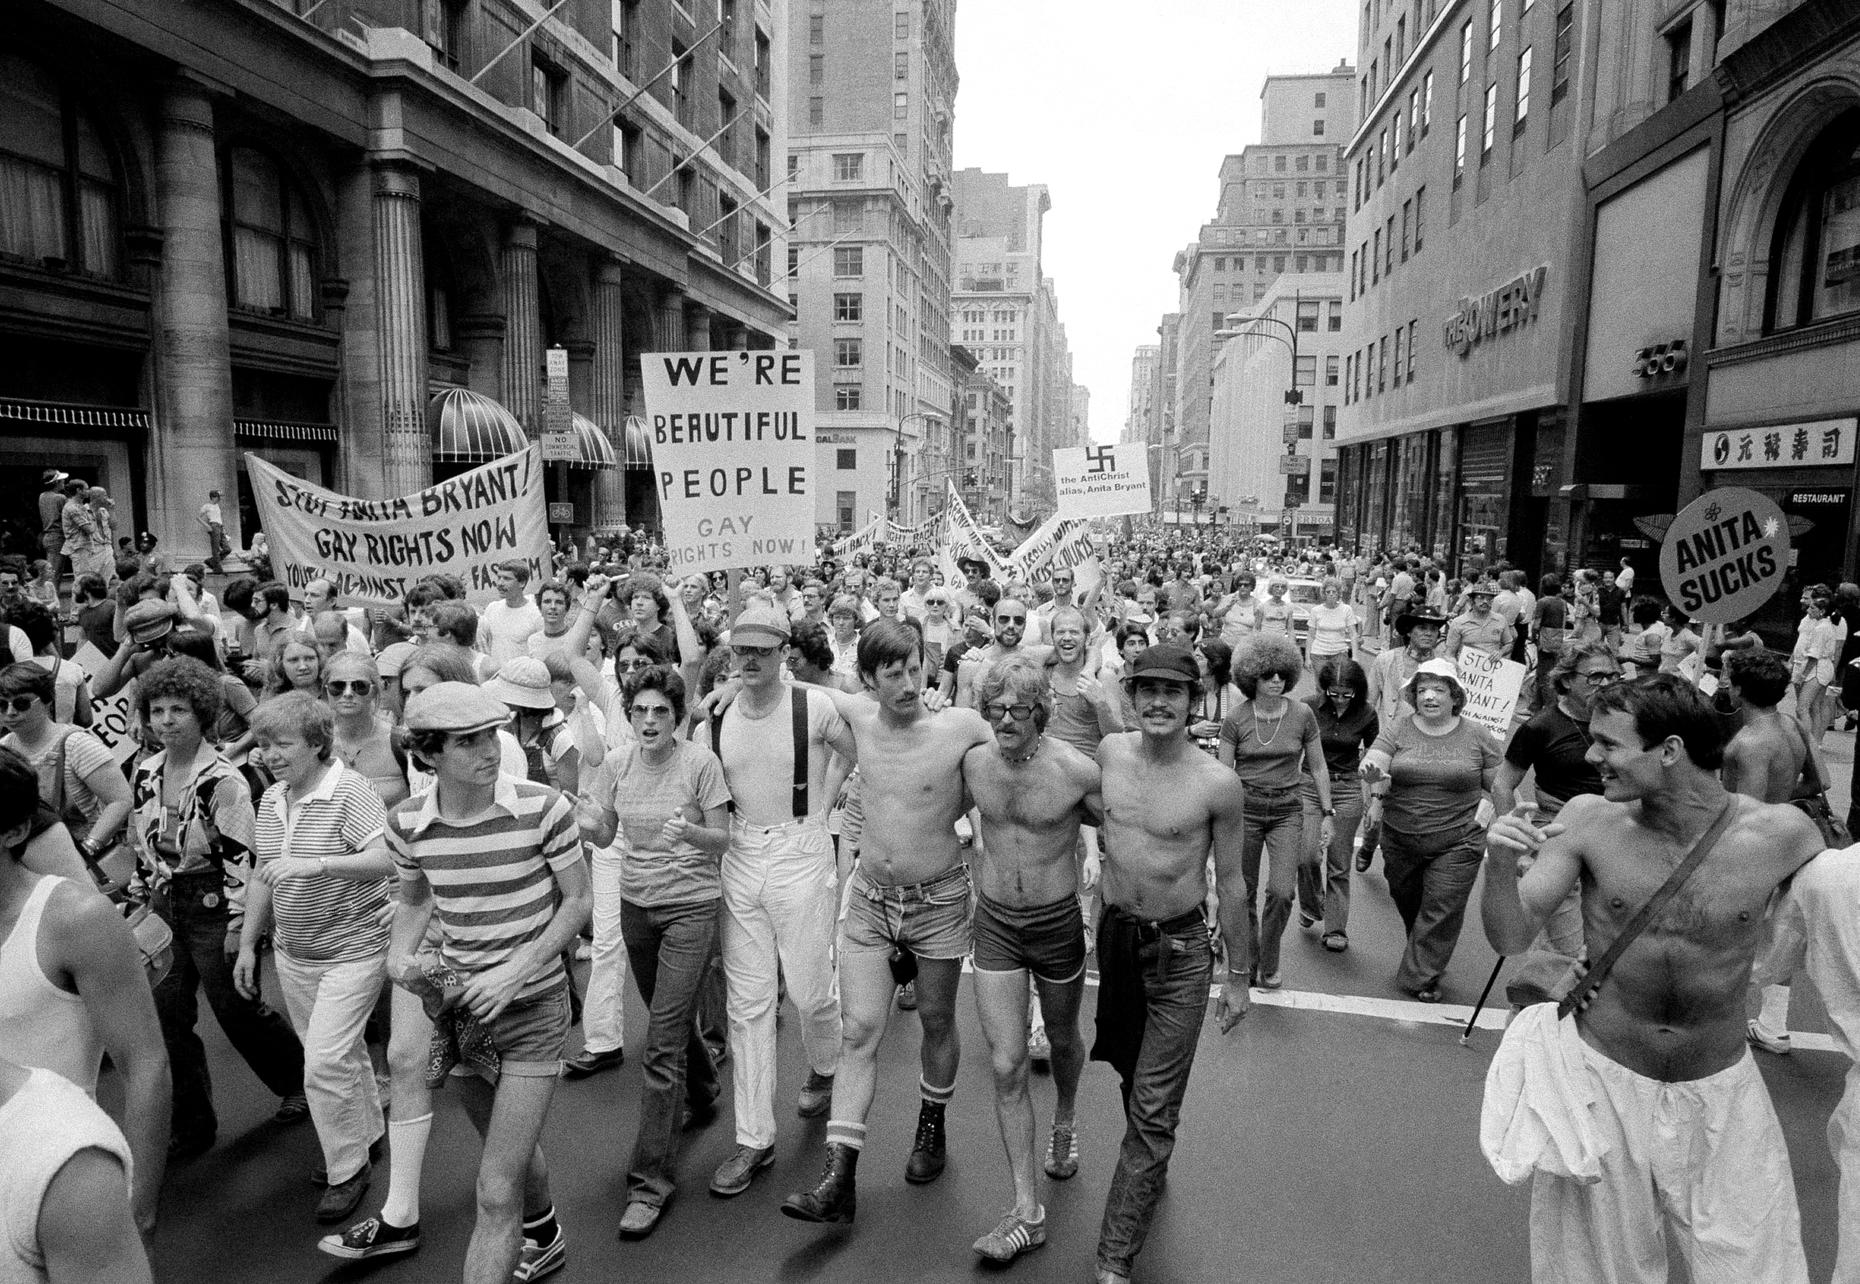 Pride parades in 1977 were sure to make mention of Anita Bryant, who had successfully led a recall of a gay rights ordinance in Florida. This is a parade in New York City on June 27, 1977. (Carlos Rene Perez/ AP Photo)